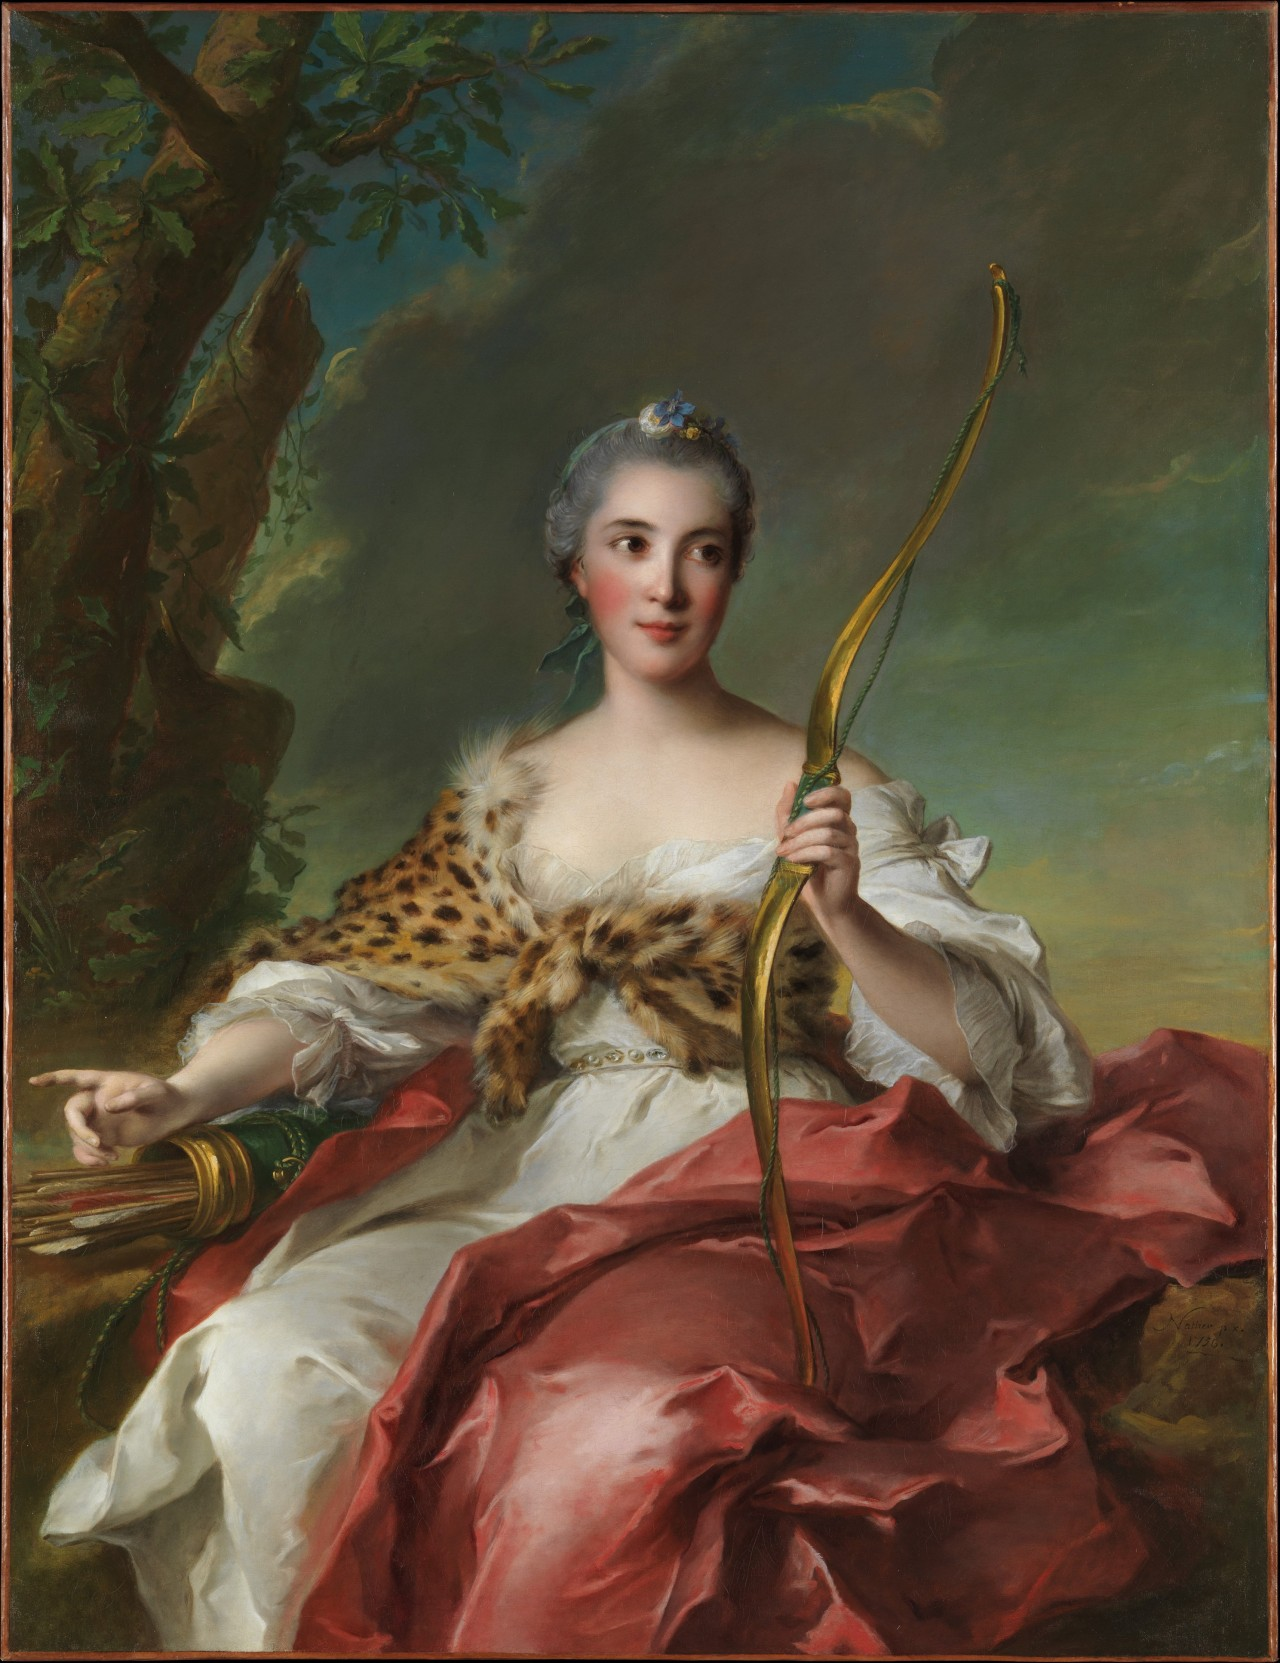 Madame de Maison-Rouge (1756) as Diana (goddess of the hunt in Roman mythology) by Jean Marc Nattier  (French painter, 1685–1766).